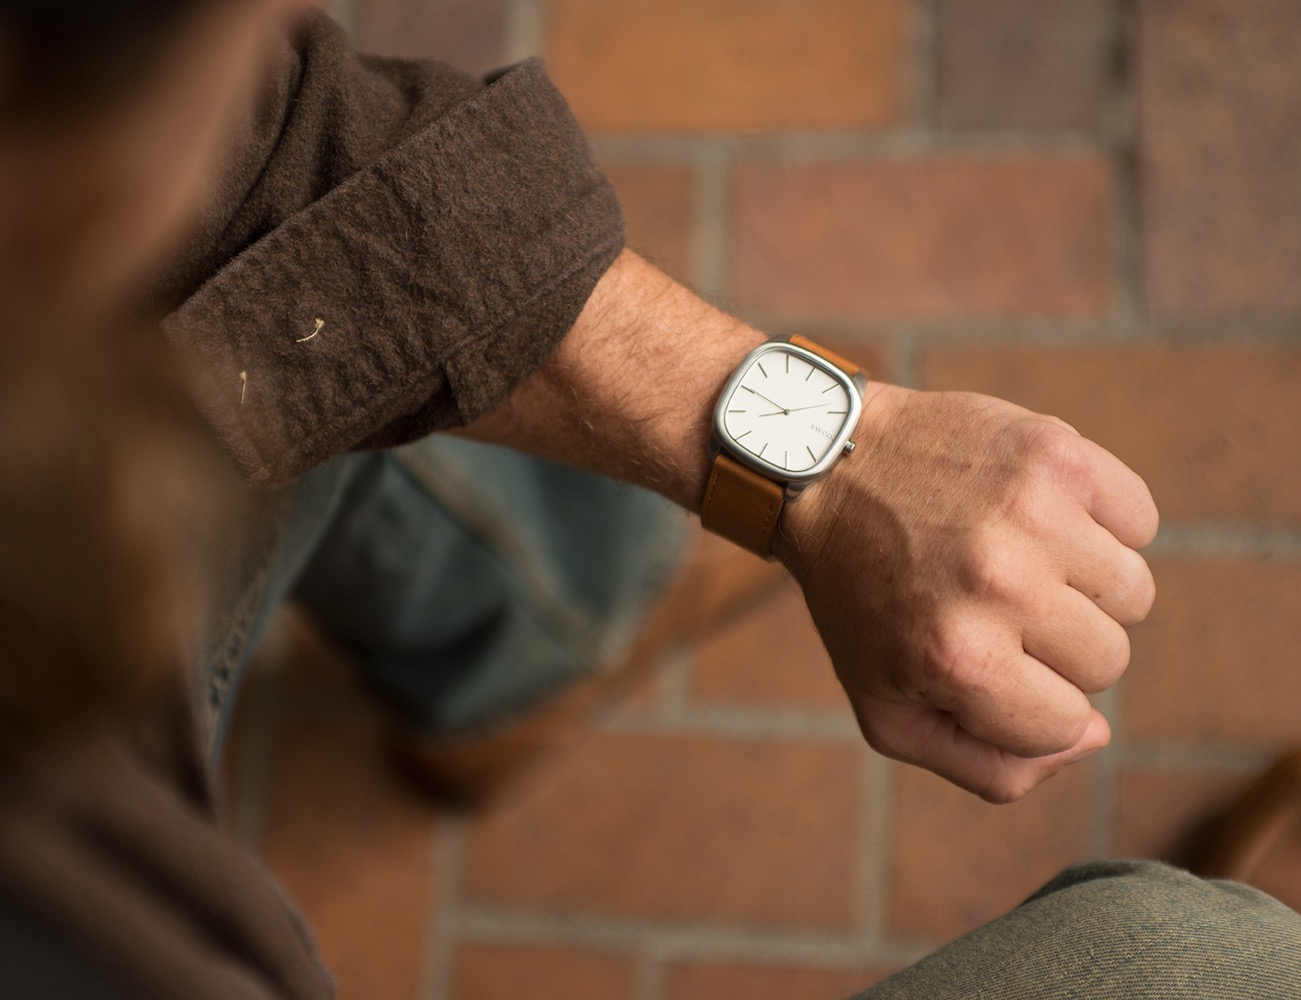 Sasqwatch Co. ICON – Durable and Affordable Watches